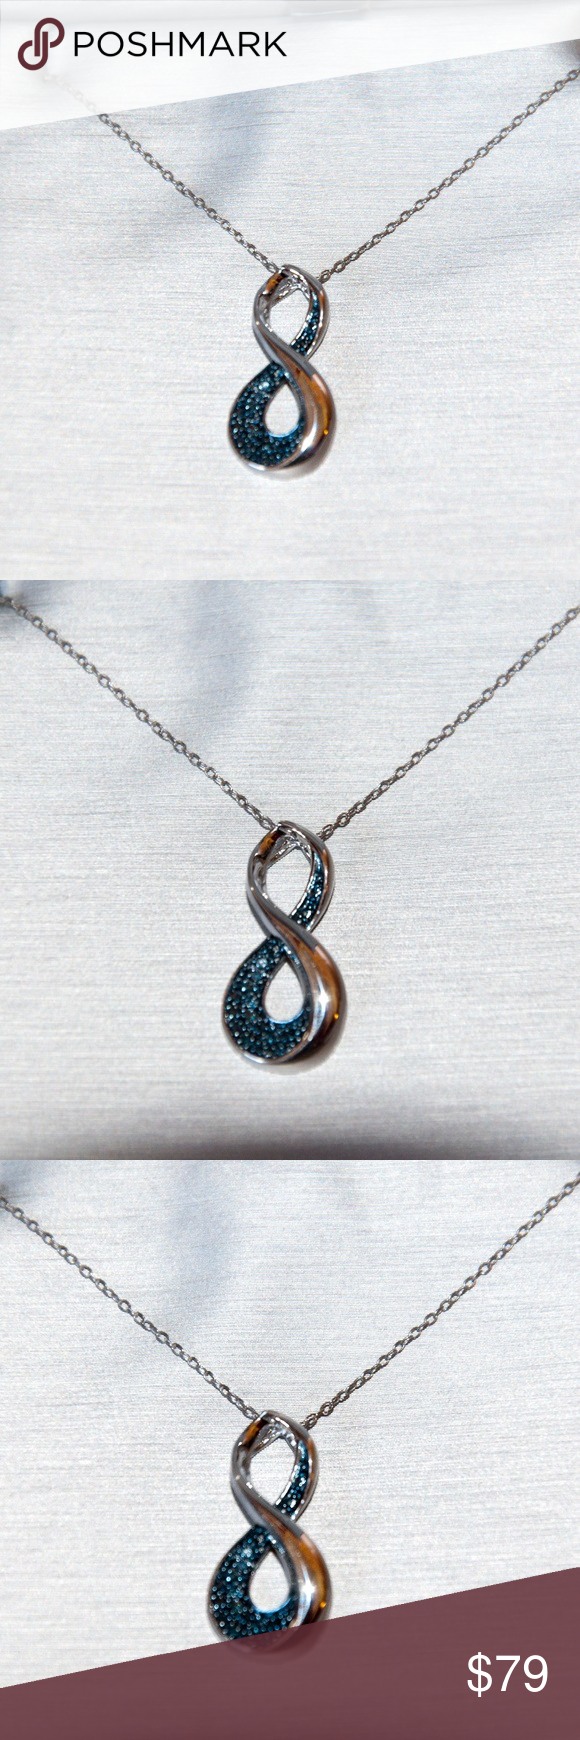 New zales infinity sterling silver necklace zales jewelry